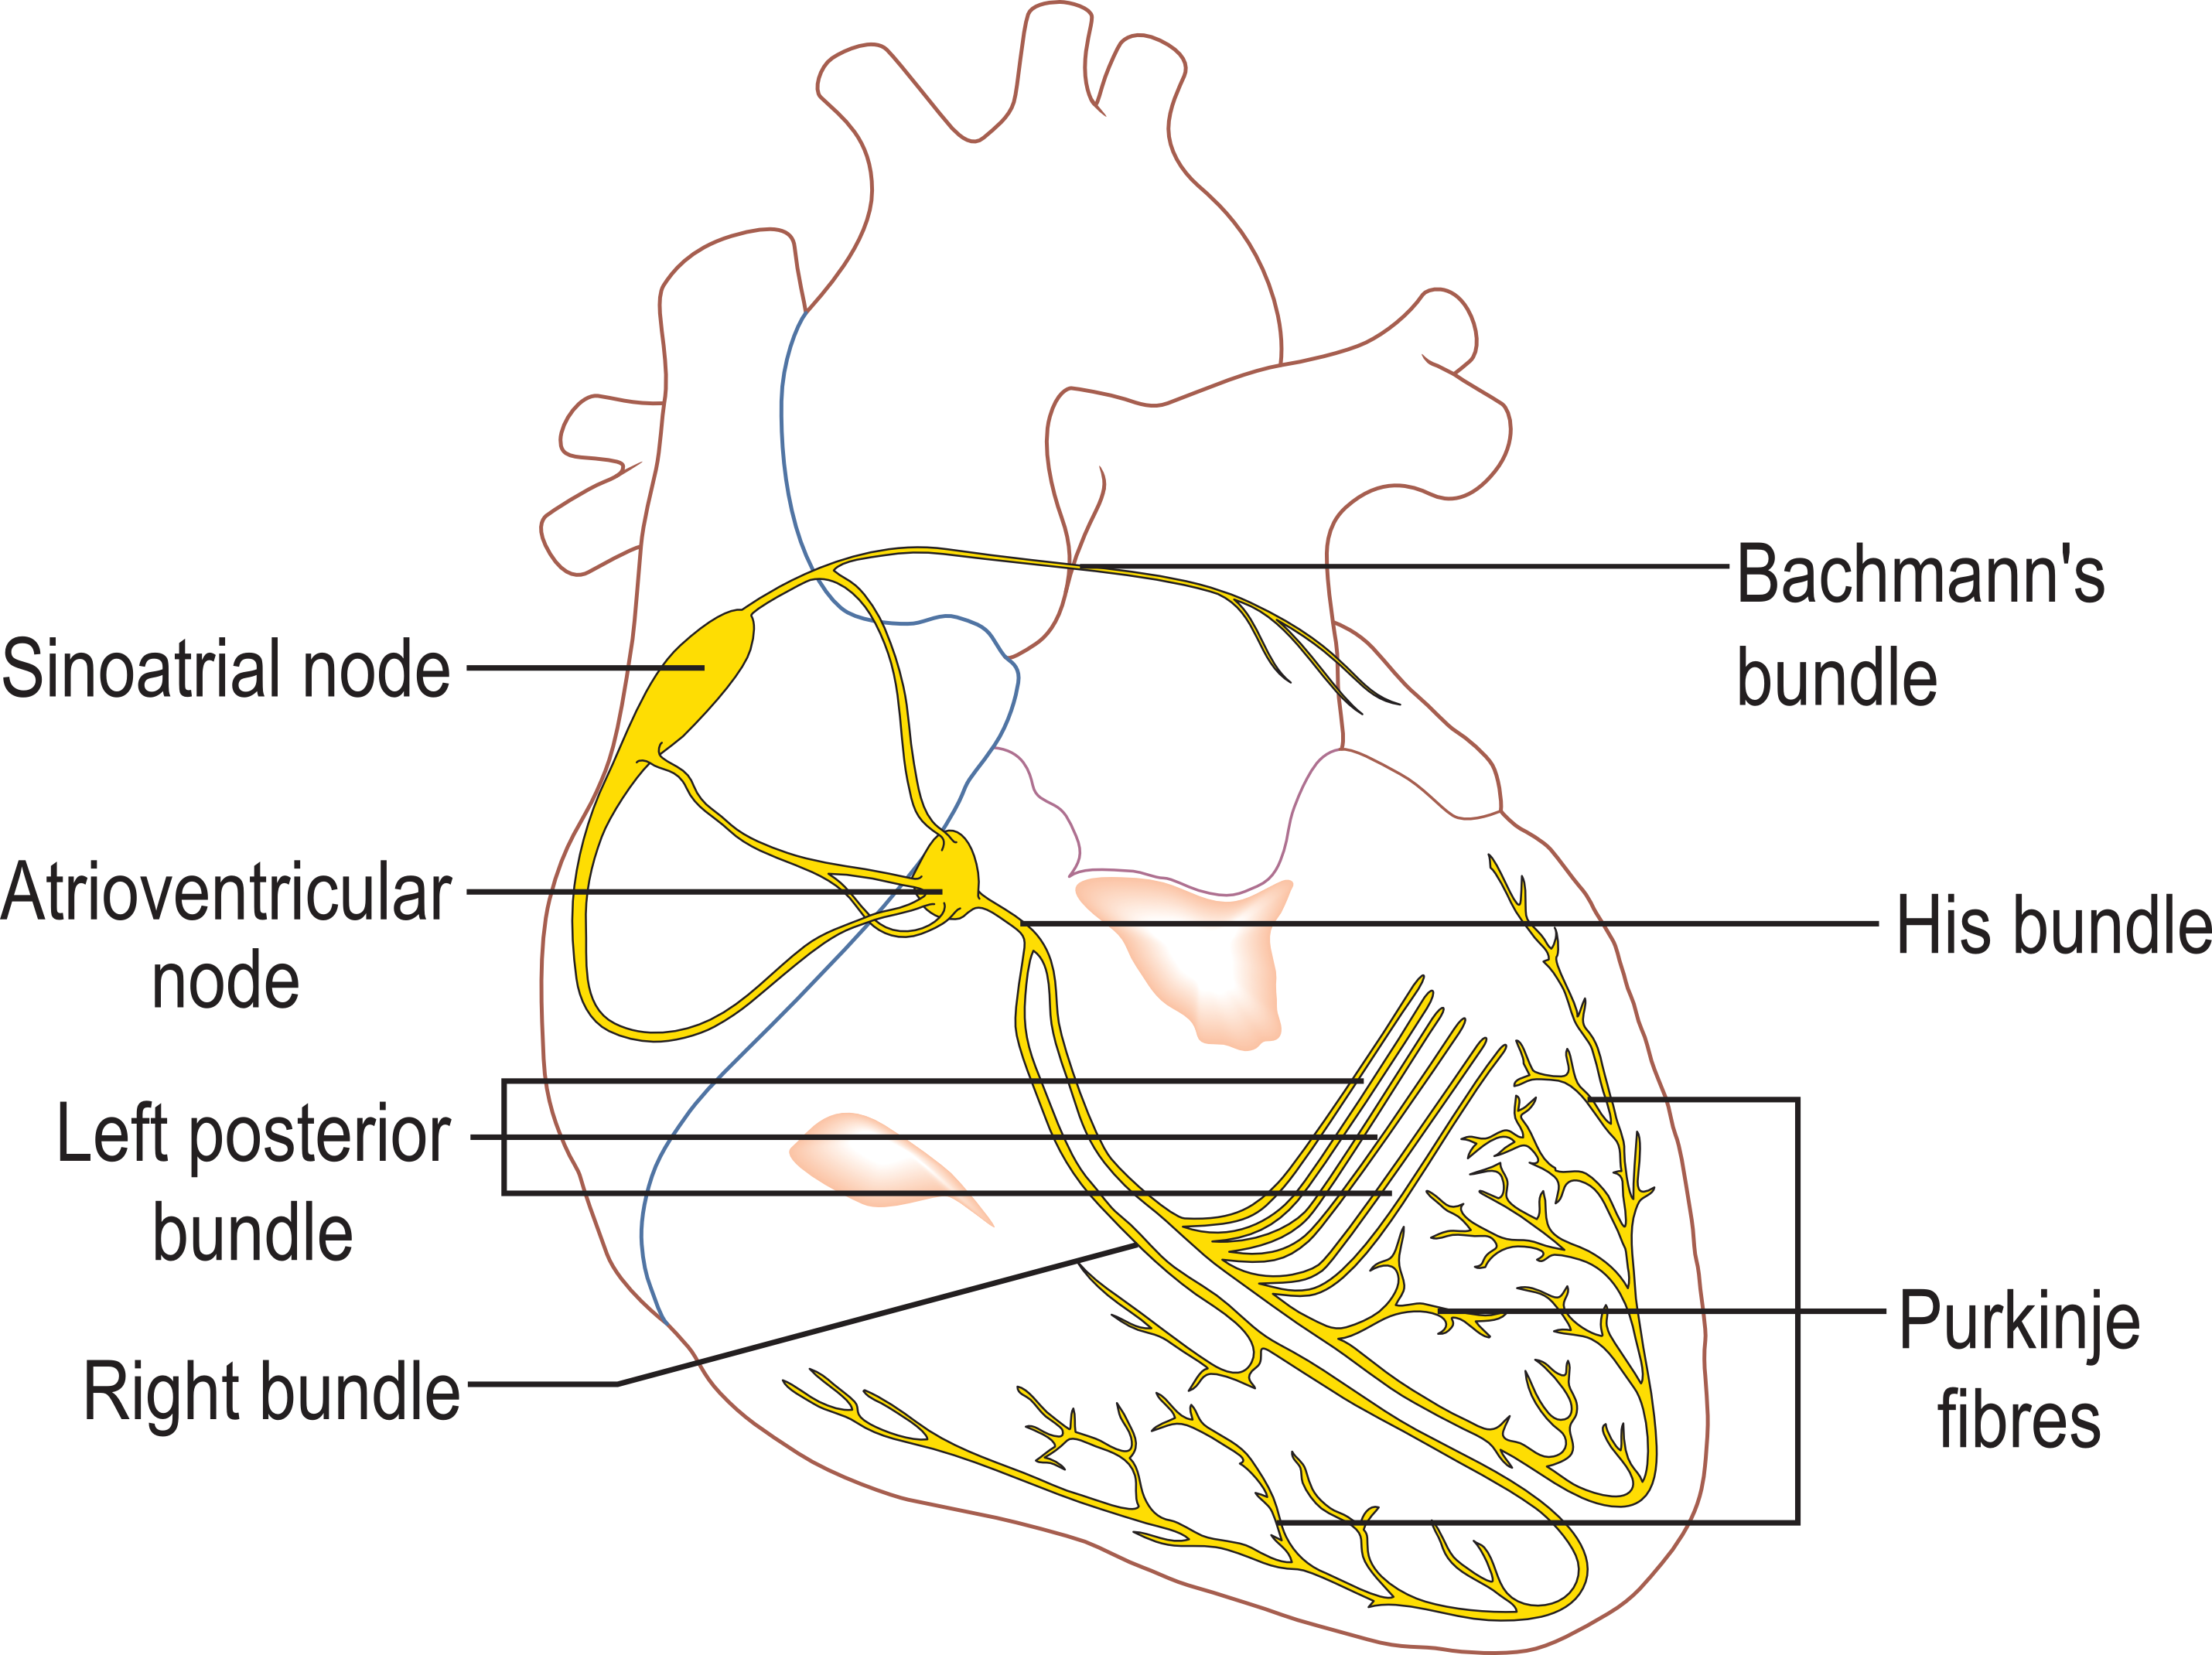 Transparent first second third clipart - Conduction System Of The Heart - Specialized Tissues In The Heart